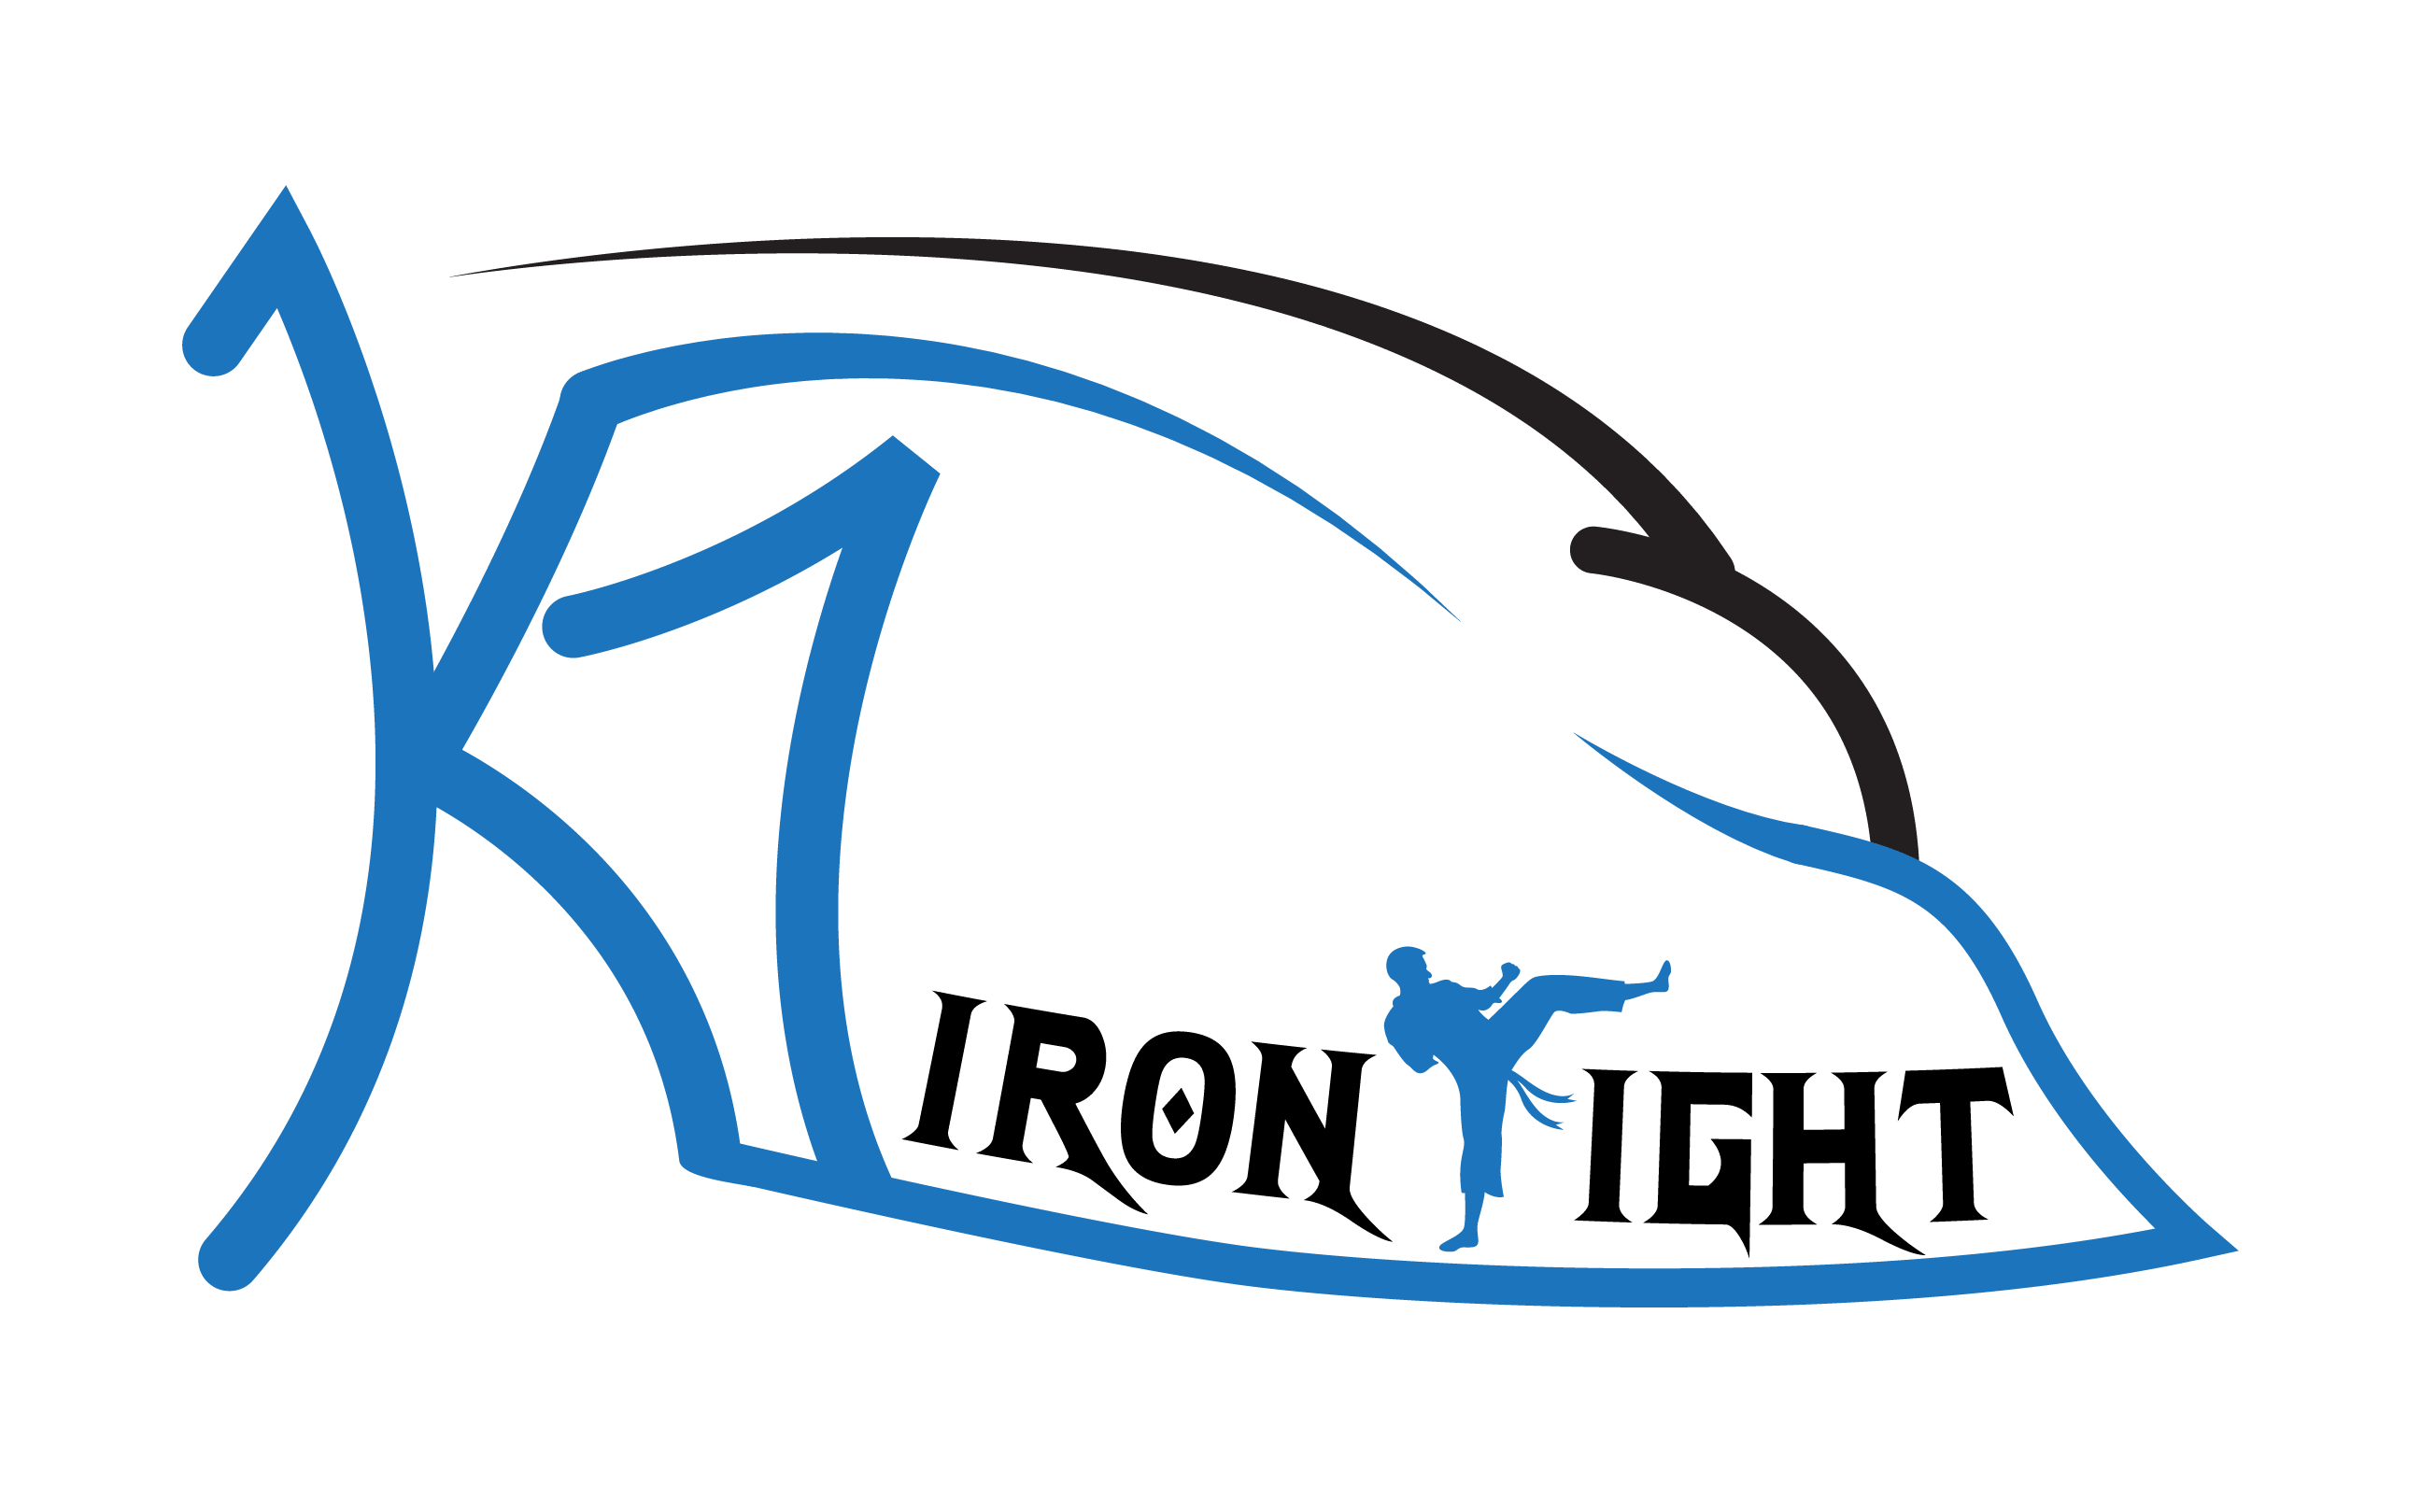 K1 Iron Fight